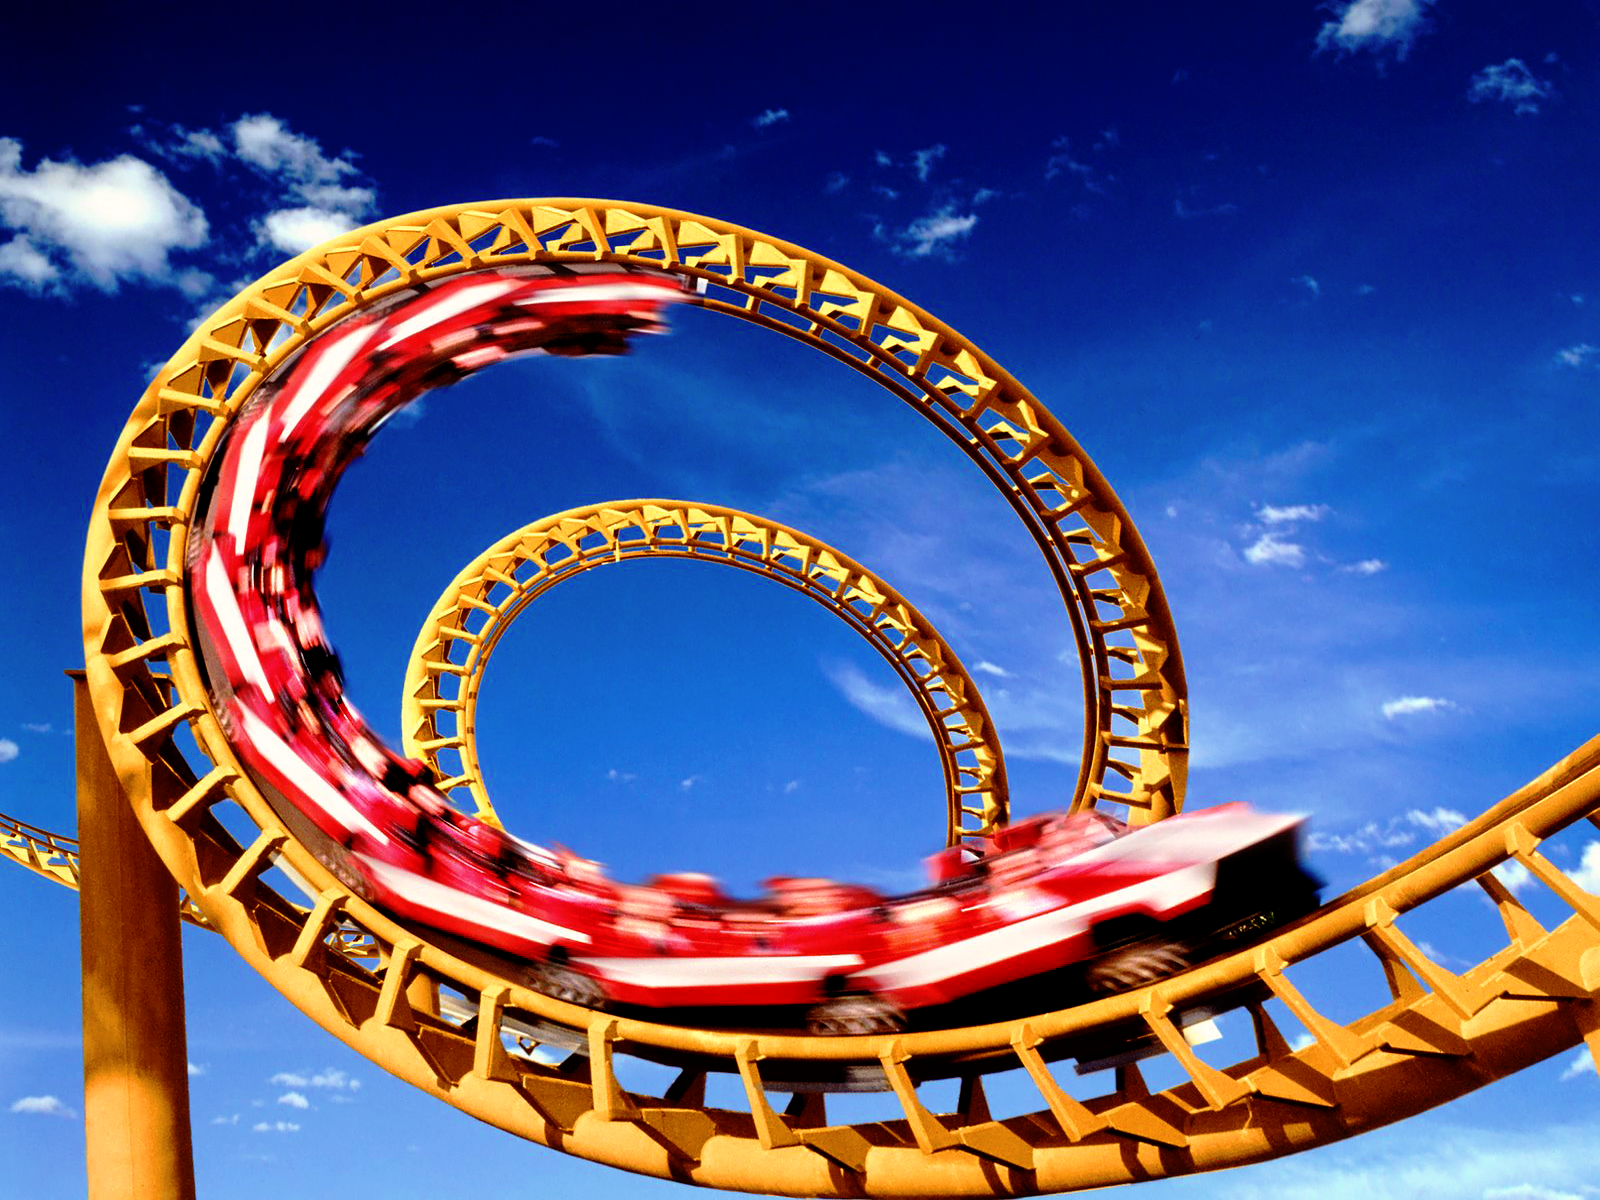 roller-coaster-wall-inkblue-sky